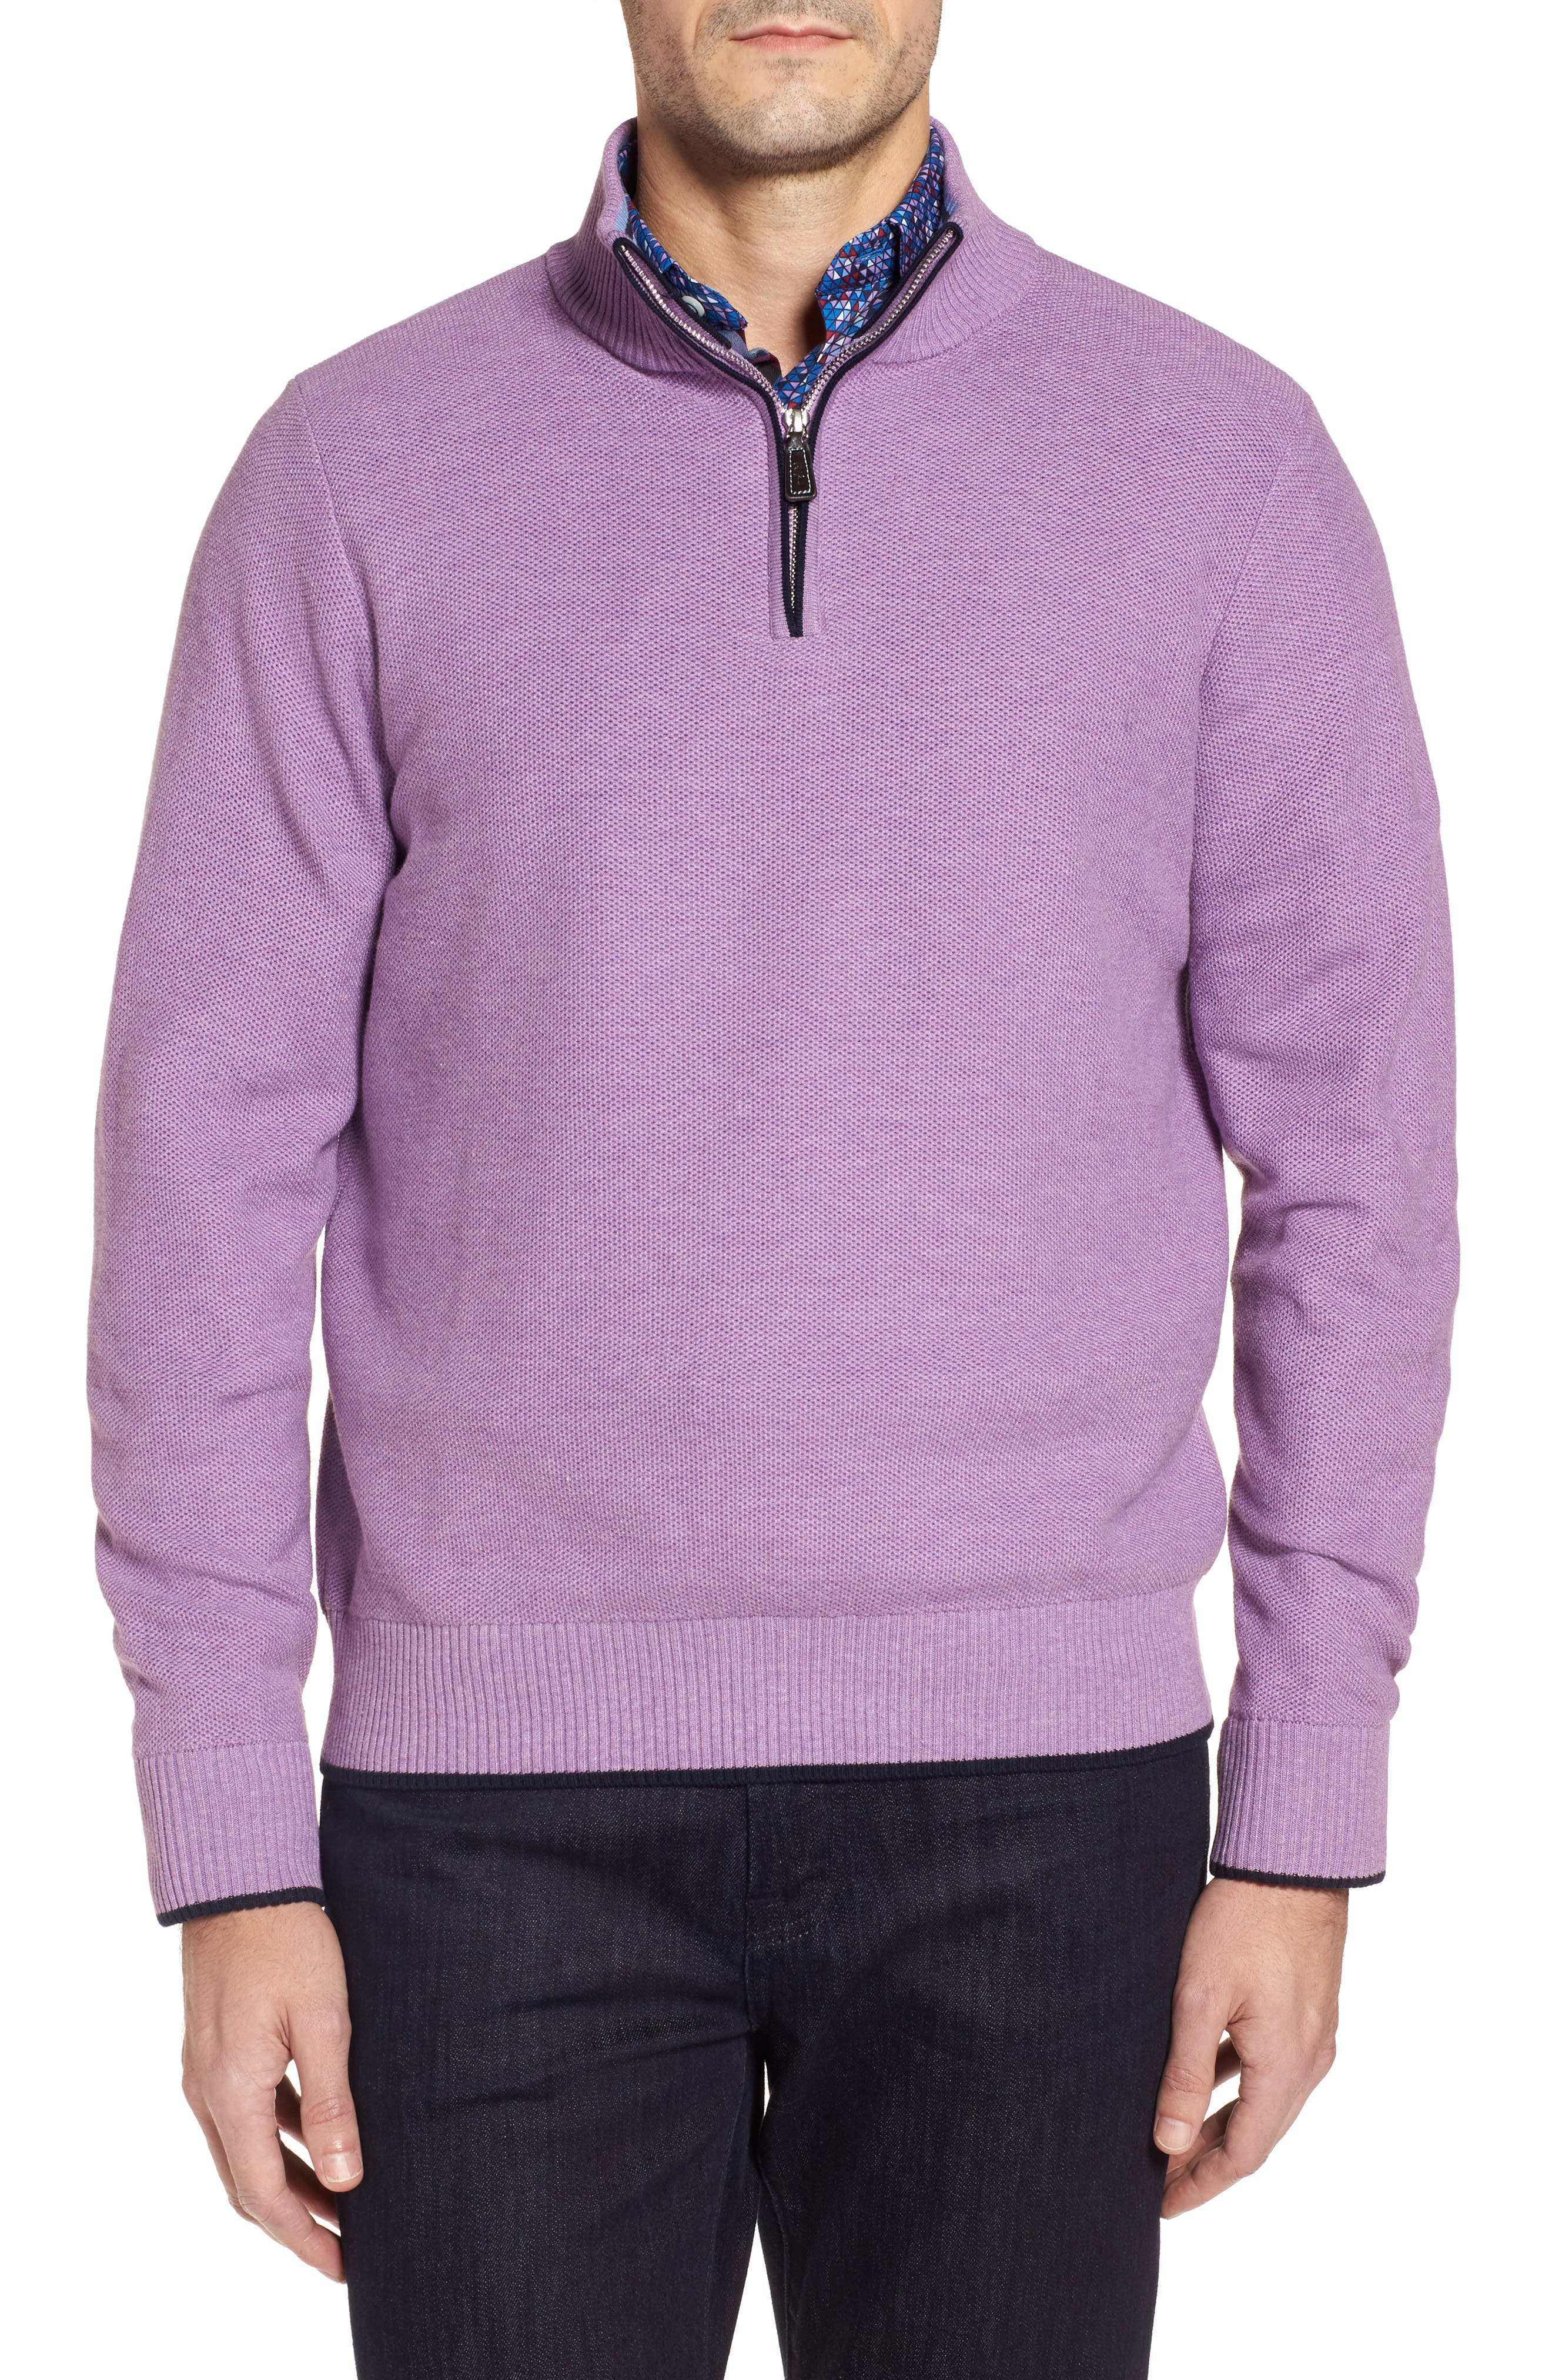 Main Image - TailorByrd Ossun Tipped Quarter Zip Sweater